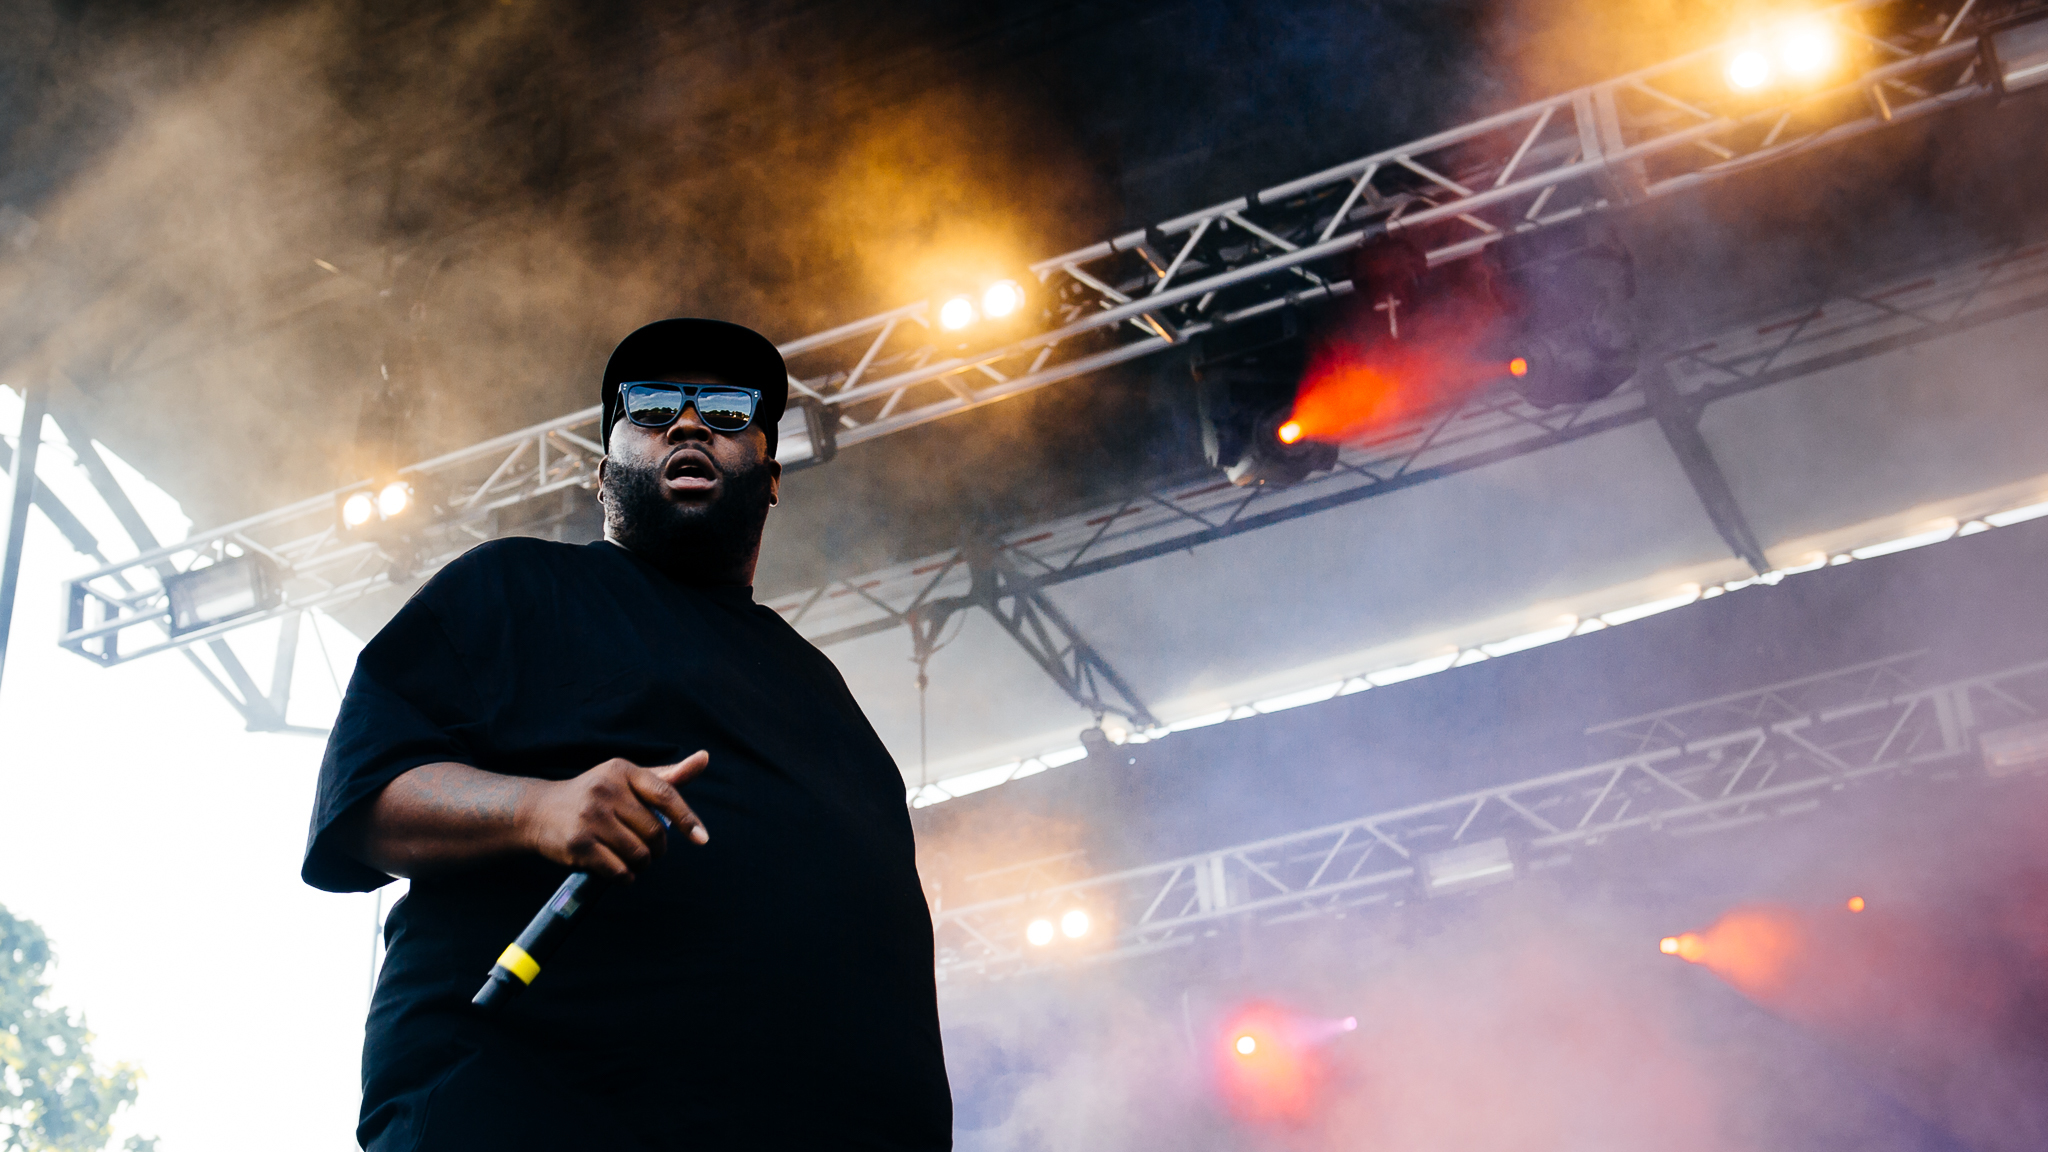 Run The Jewels played to a sold out crowd under stormy skies on Sunday at Pitchfork Music Festival, July 19, 2015.